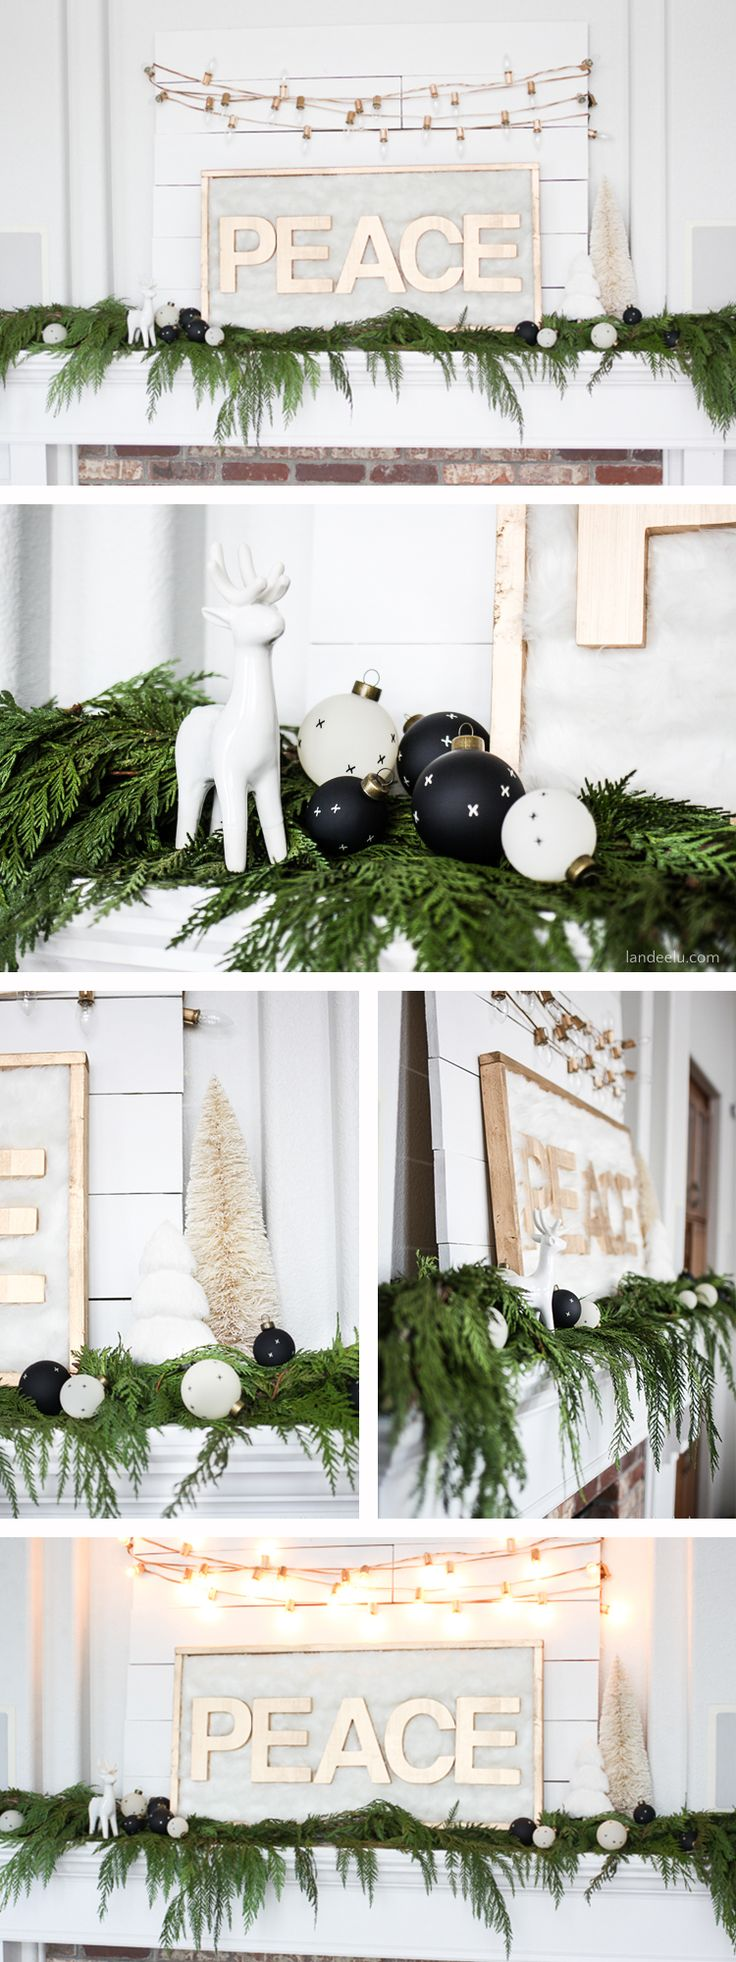 A simple Christmas mantel idea using fresh cedar Christmas garland! Beautiful and peaceful. Gold, white, lights and greenery.